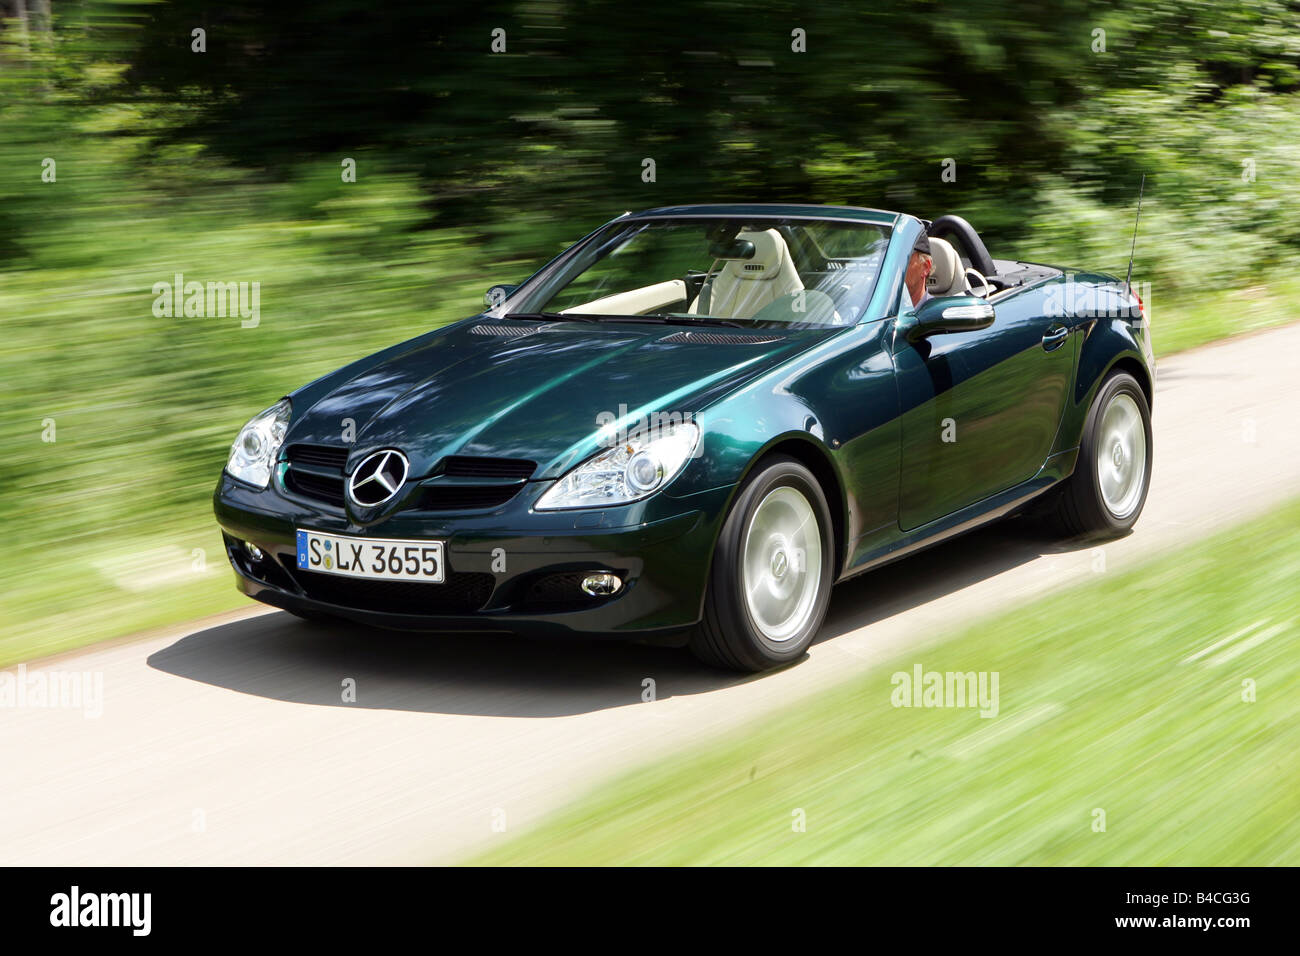 mercedes slk 280 model year 2005 dark green driving. Black Bedroom Furniture Sets. Home Design Ideas